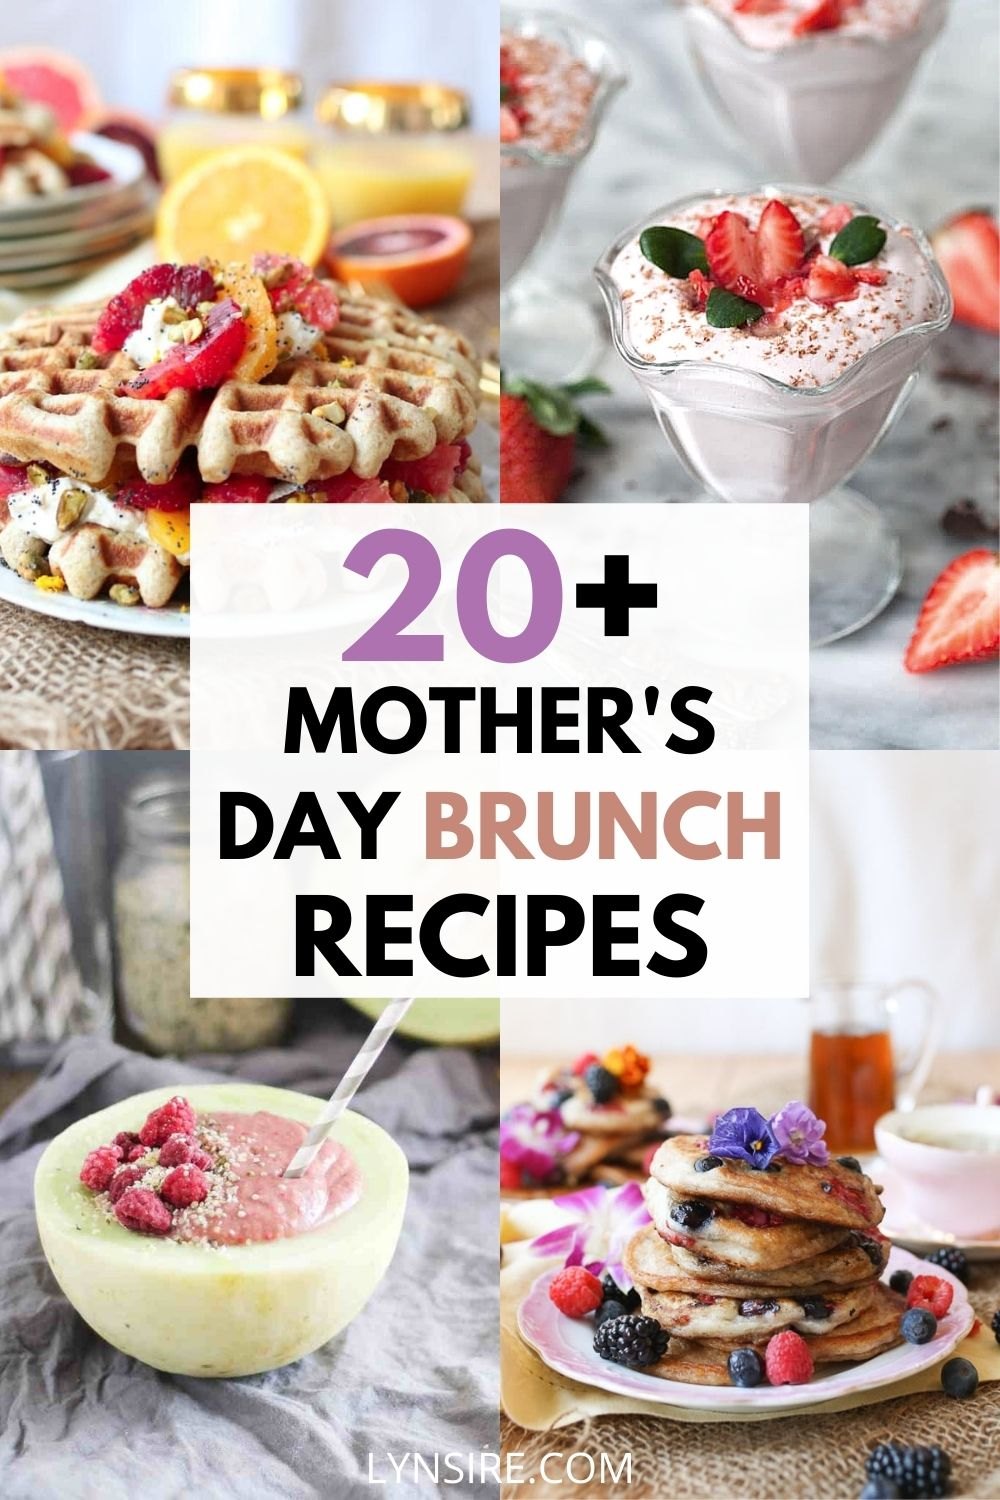 Mothers Day brunch recipes